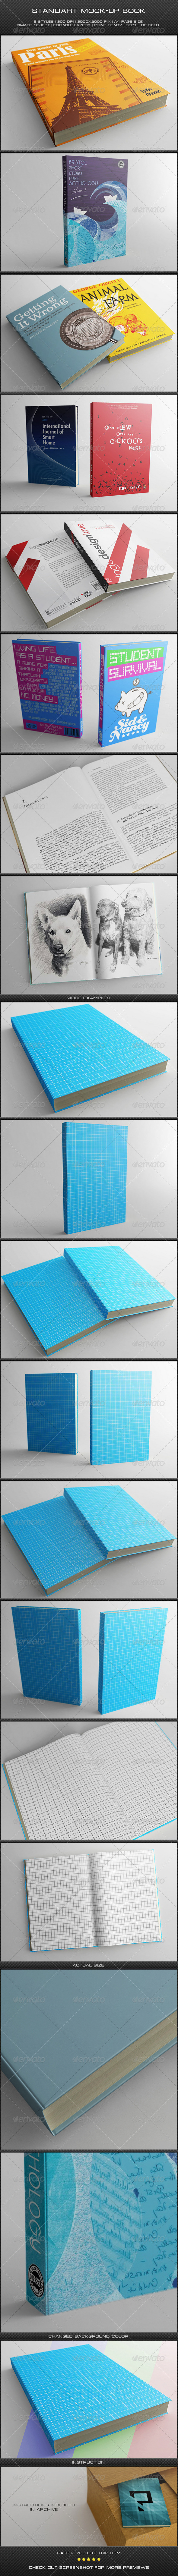 Standart Book Mock-Up  - Books Print